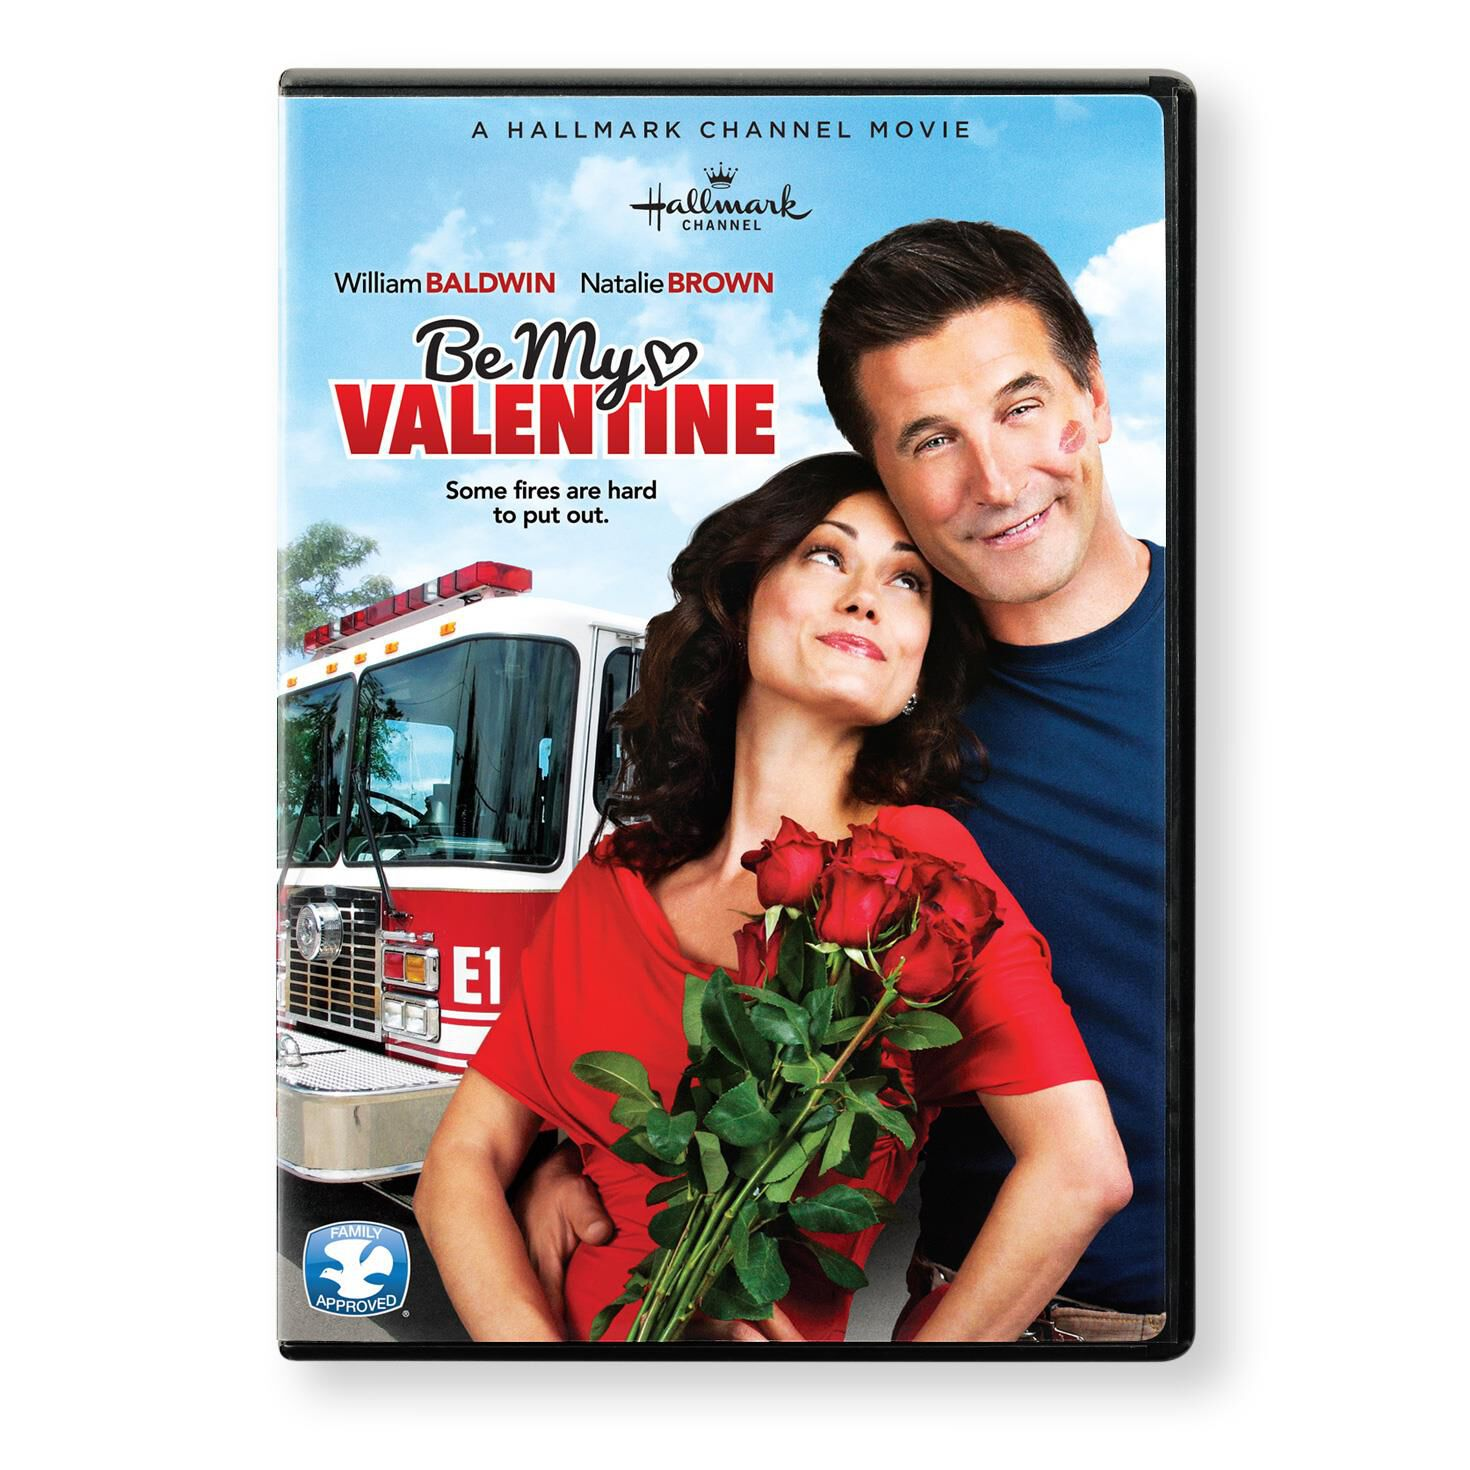 Be My Valentine Hallmark Channel Movie DVD   Hallmark Channel   Hallmark